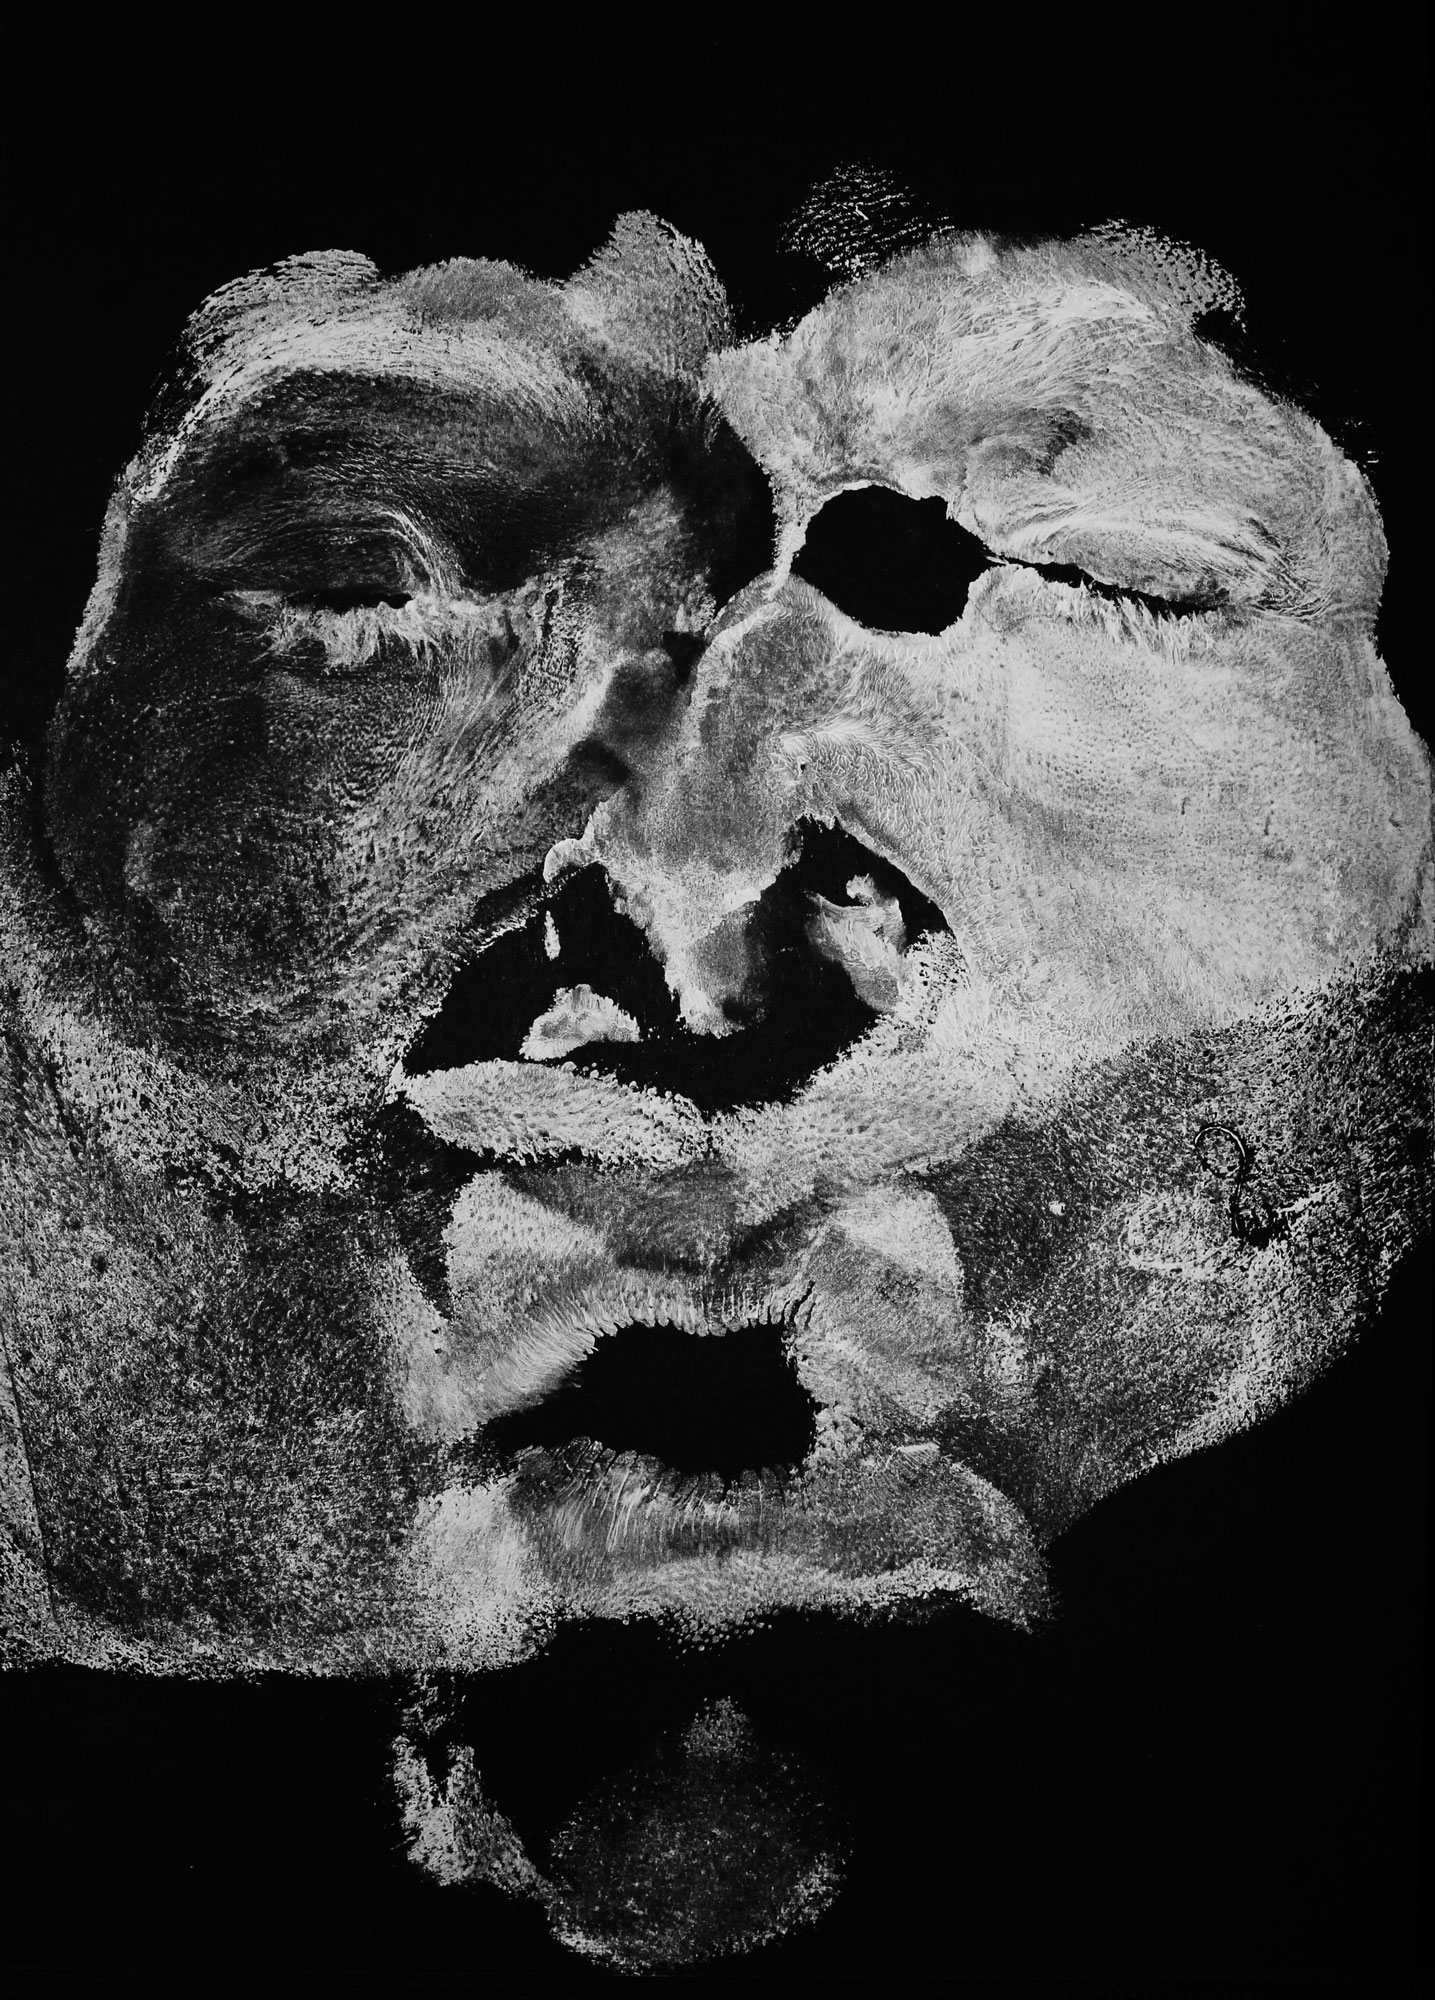 unique imprint of a face suggesting some emotion, in white color on black cardboard, with eyes drawn in white pastel